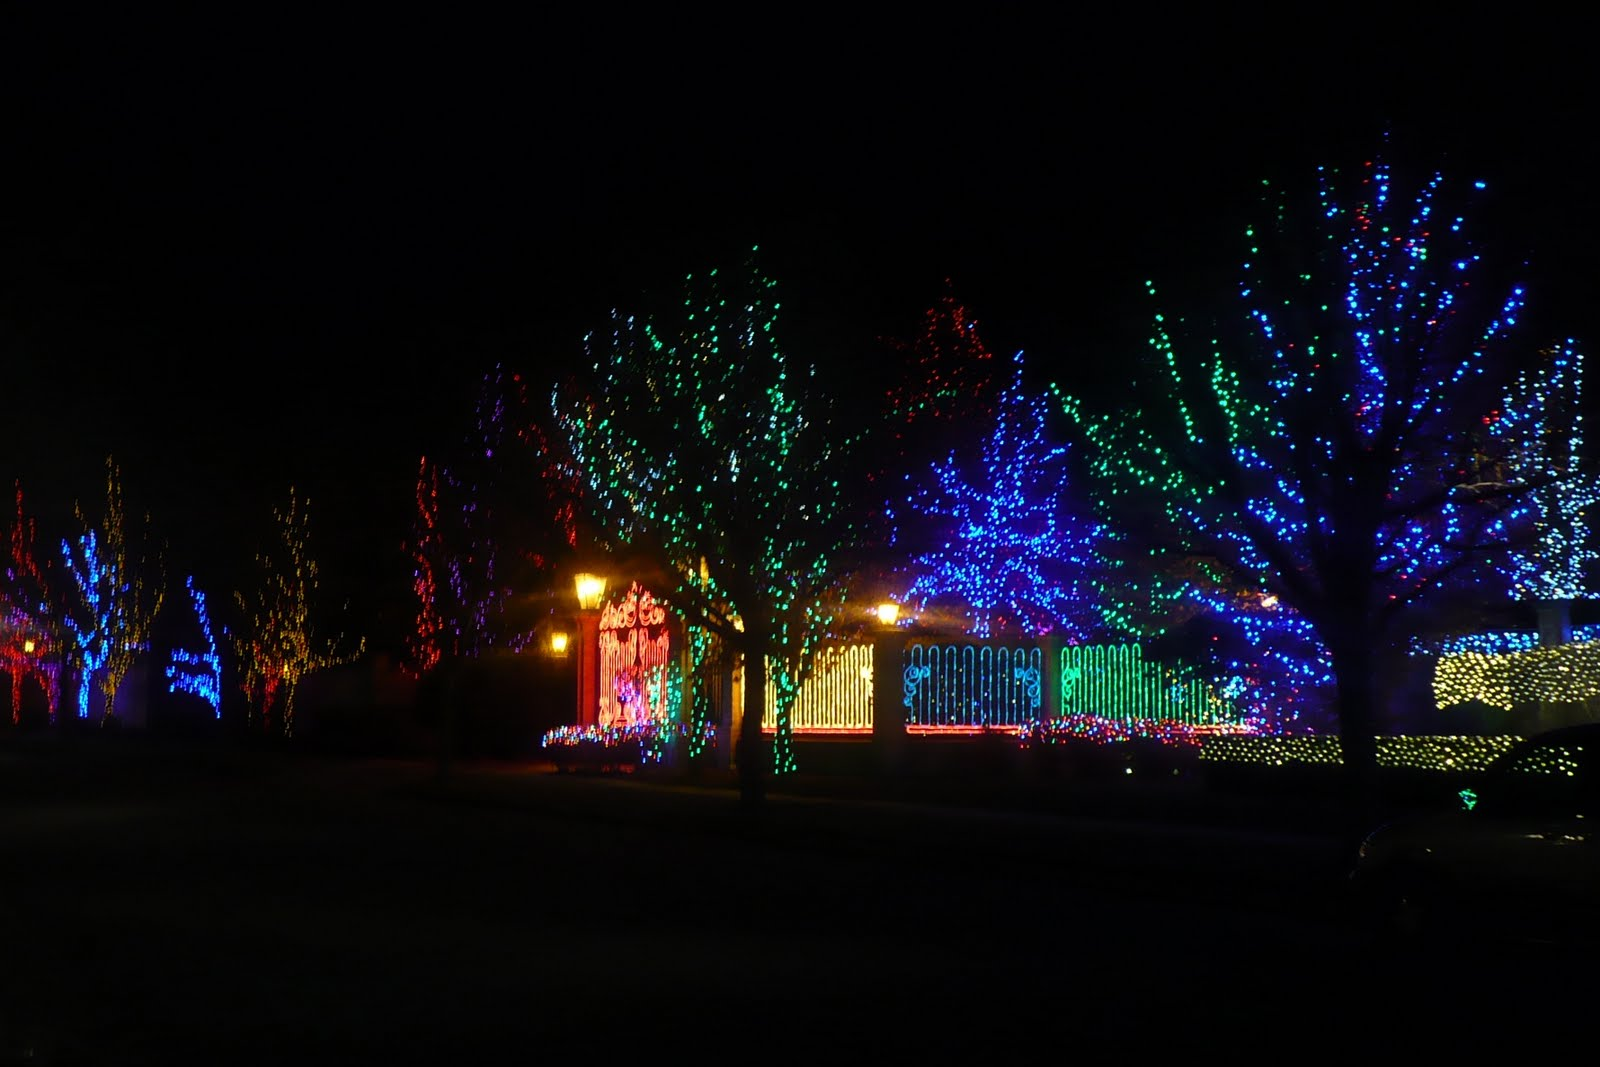 Animated Christmas Lights Wallpaper Images Pictures   Becuo 1600x1067